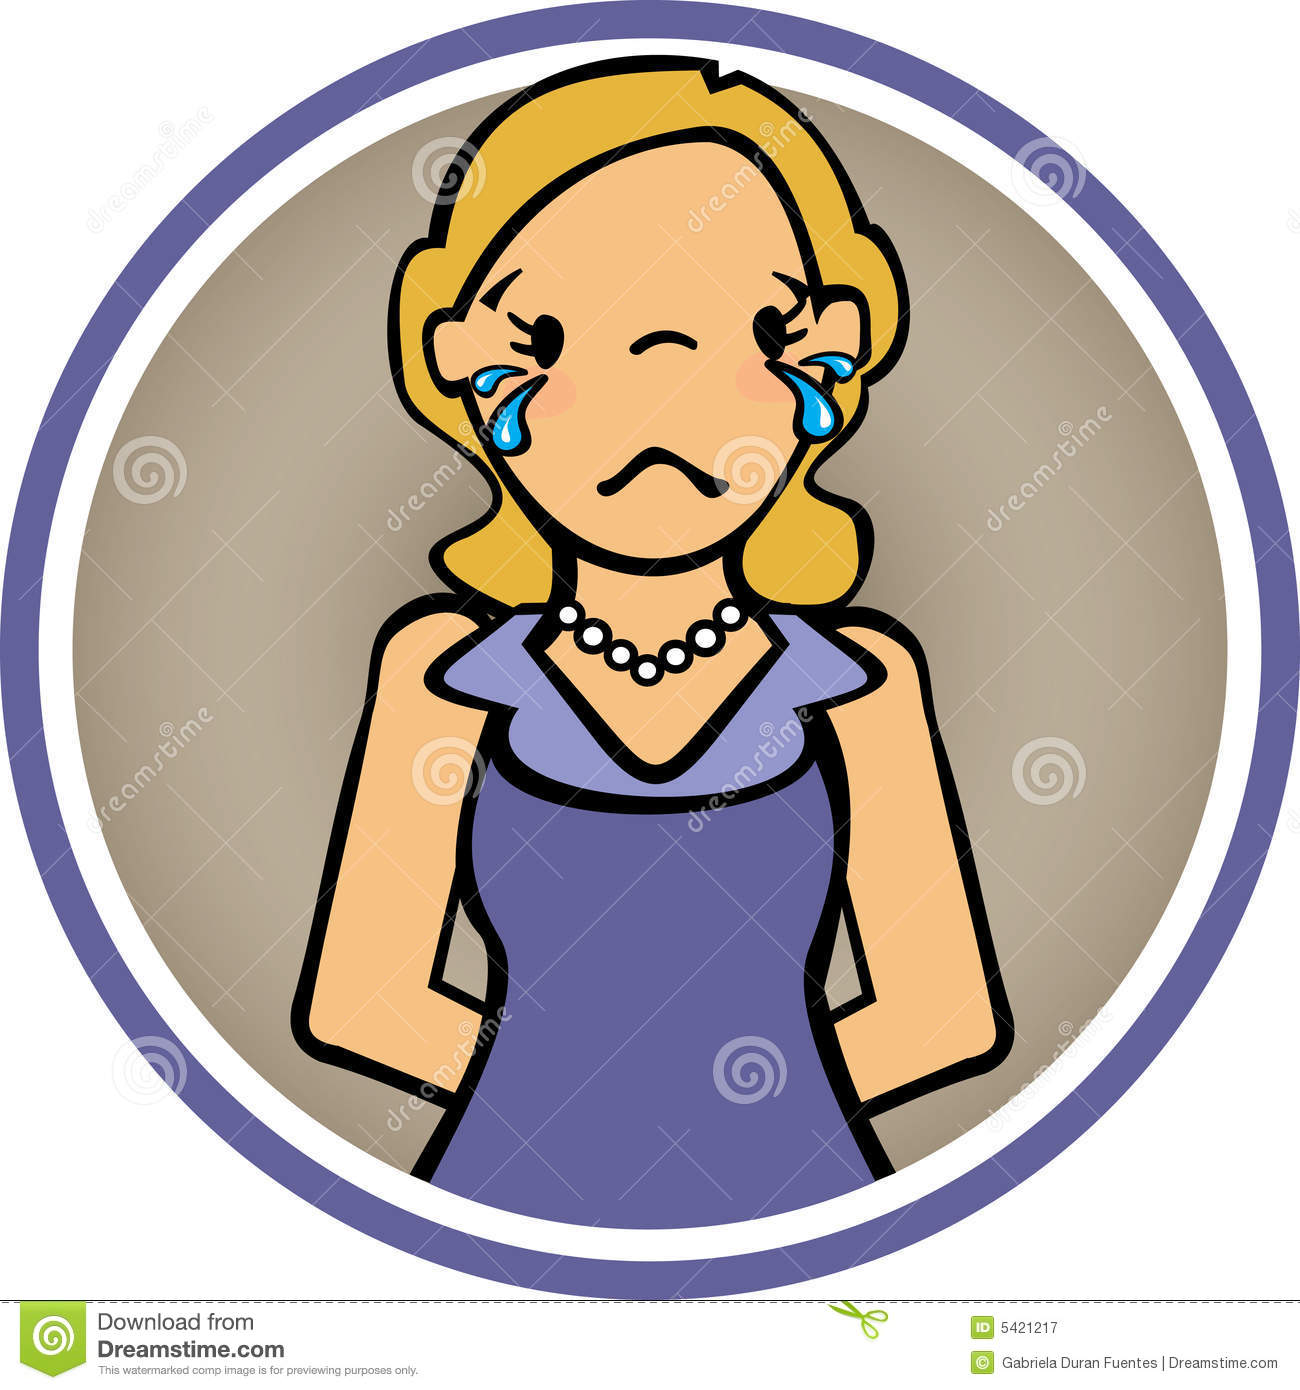 Tears clipart sadness Clipart images Free Sad face